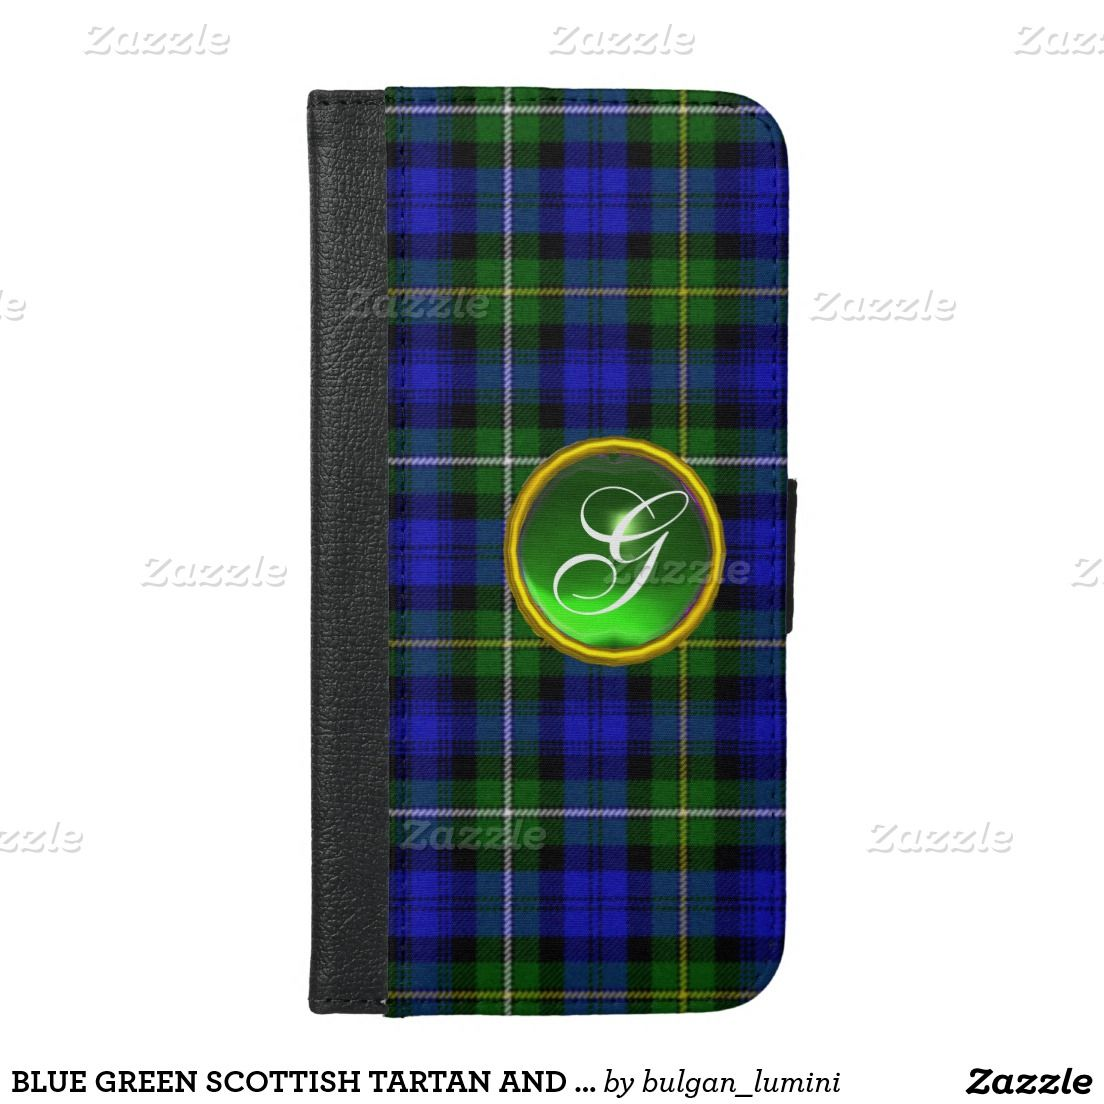 BLUE GREEN SCOTTISH TARTAN AND GEM STONE MONOGRAM